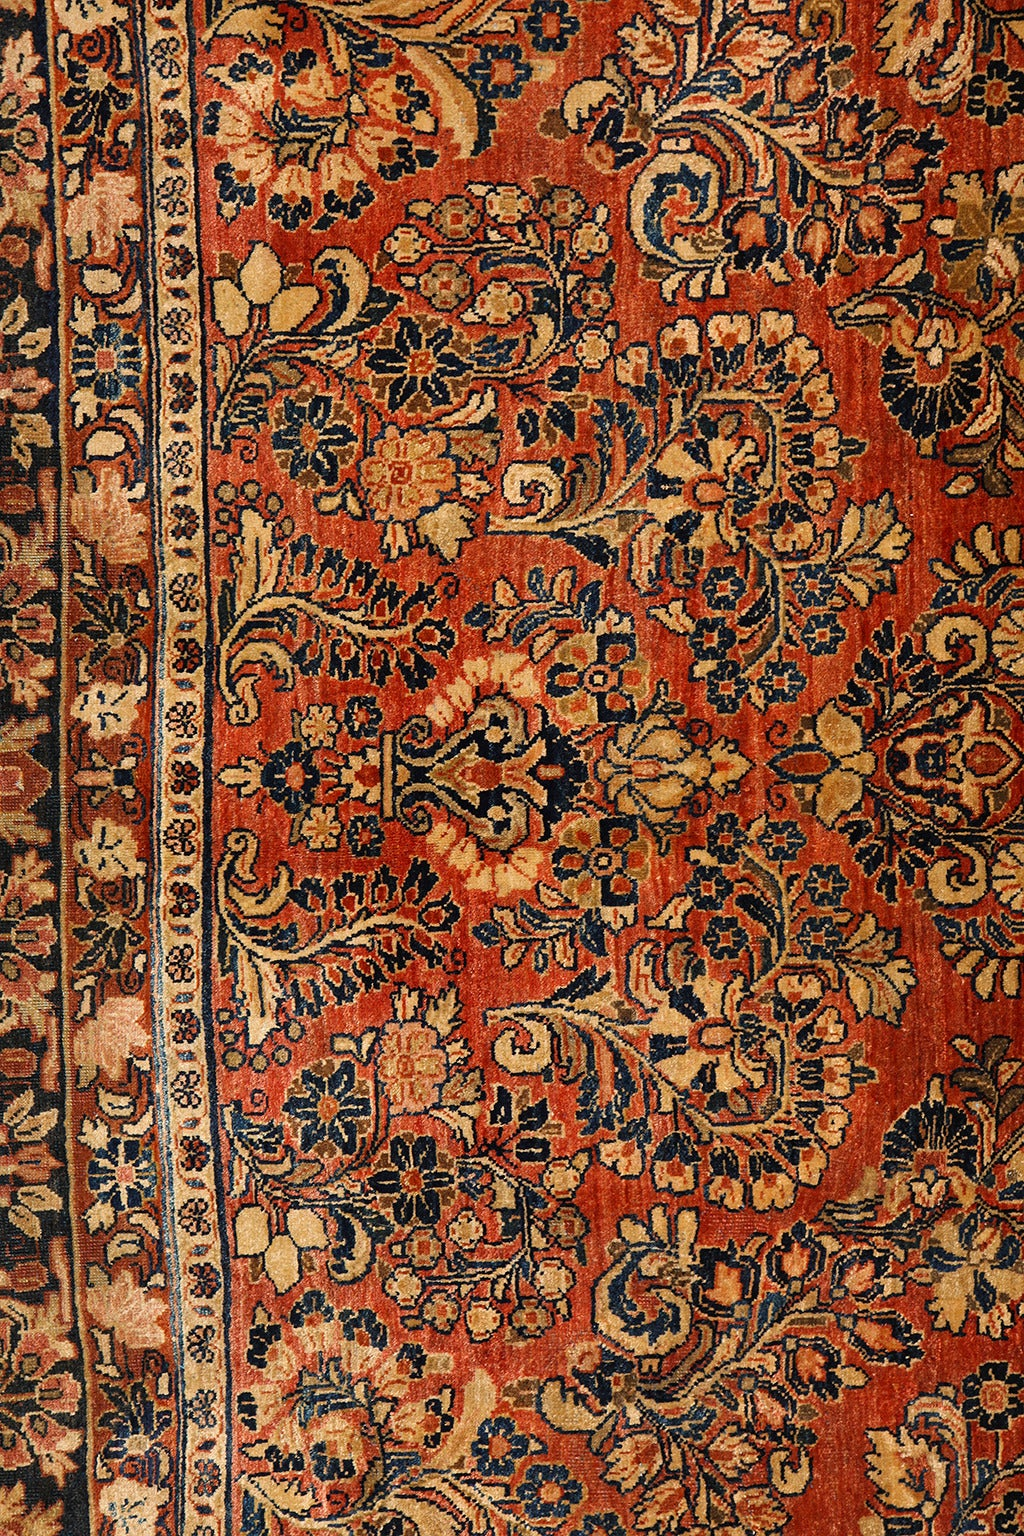 20th Century Persian Sarouk Carpet with Pure Wool Pile and Natural Vegetable Dyes, circa 1910 For Sale